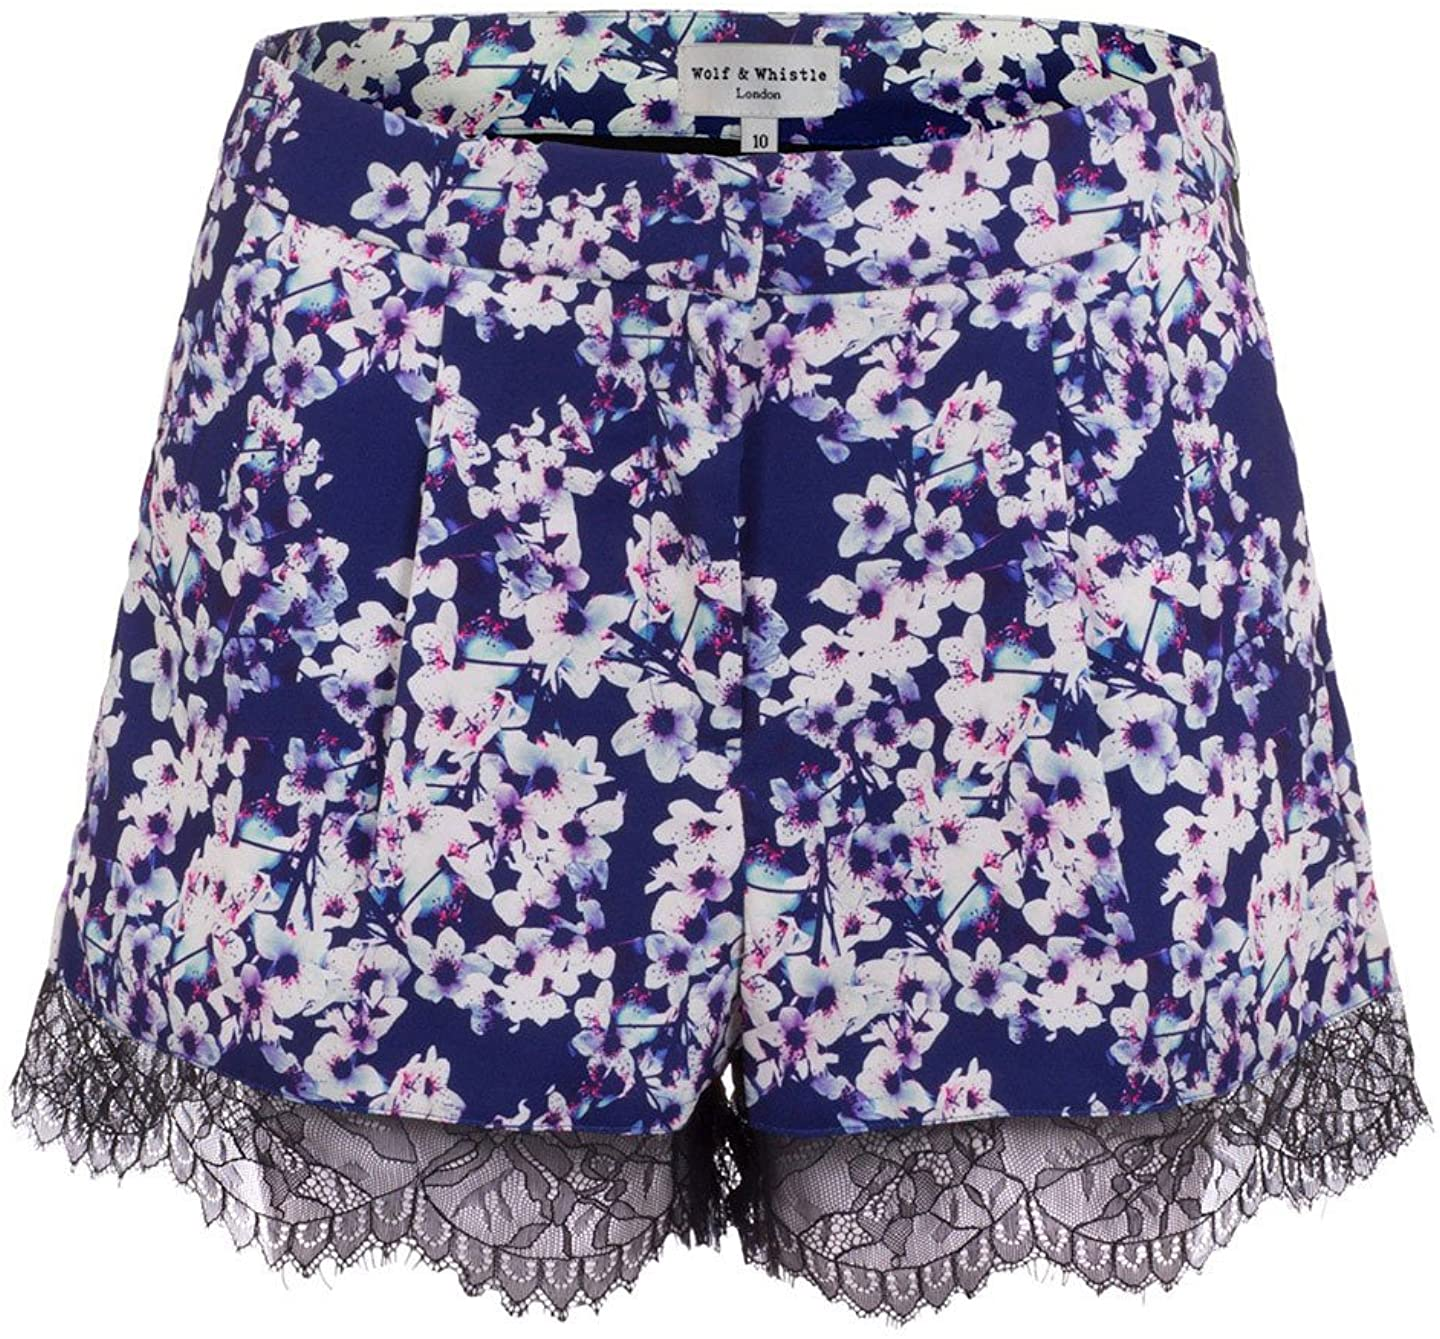 Wolf & Whistle Cherry Blossom Printed Lace Trim Shorts